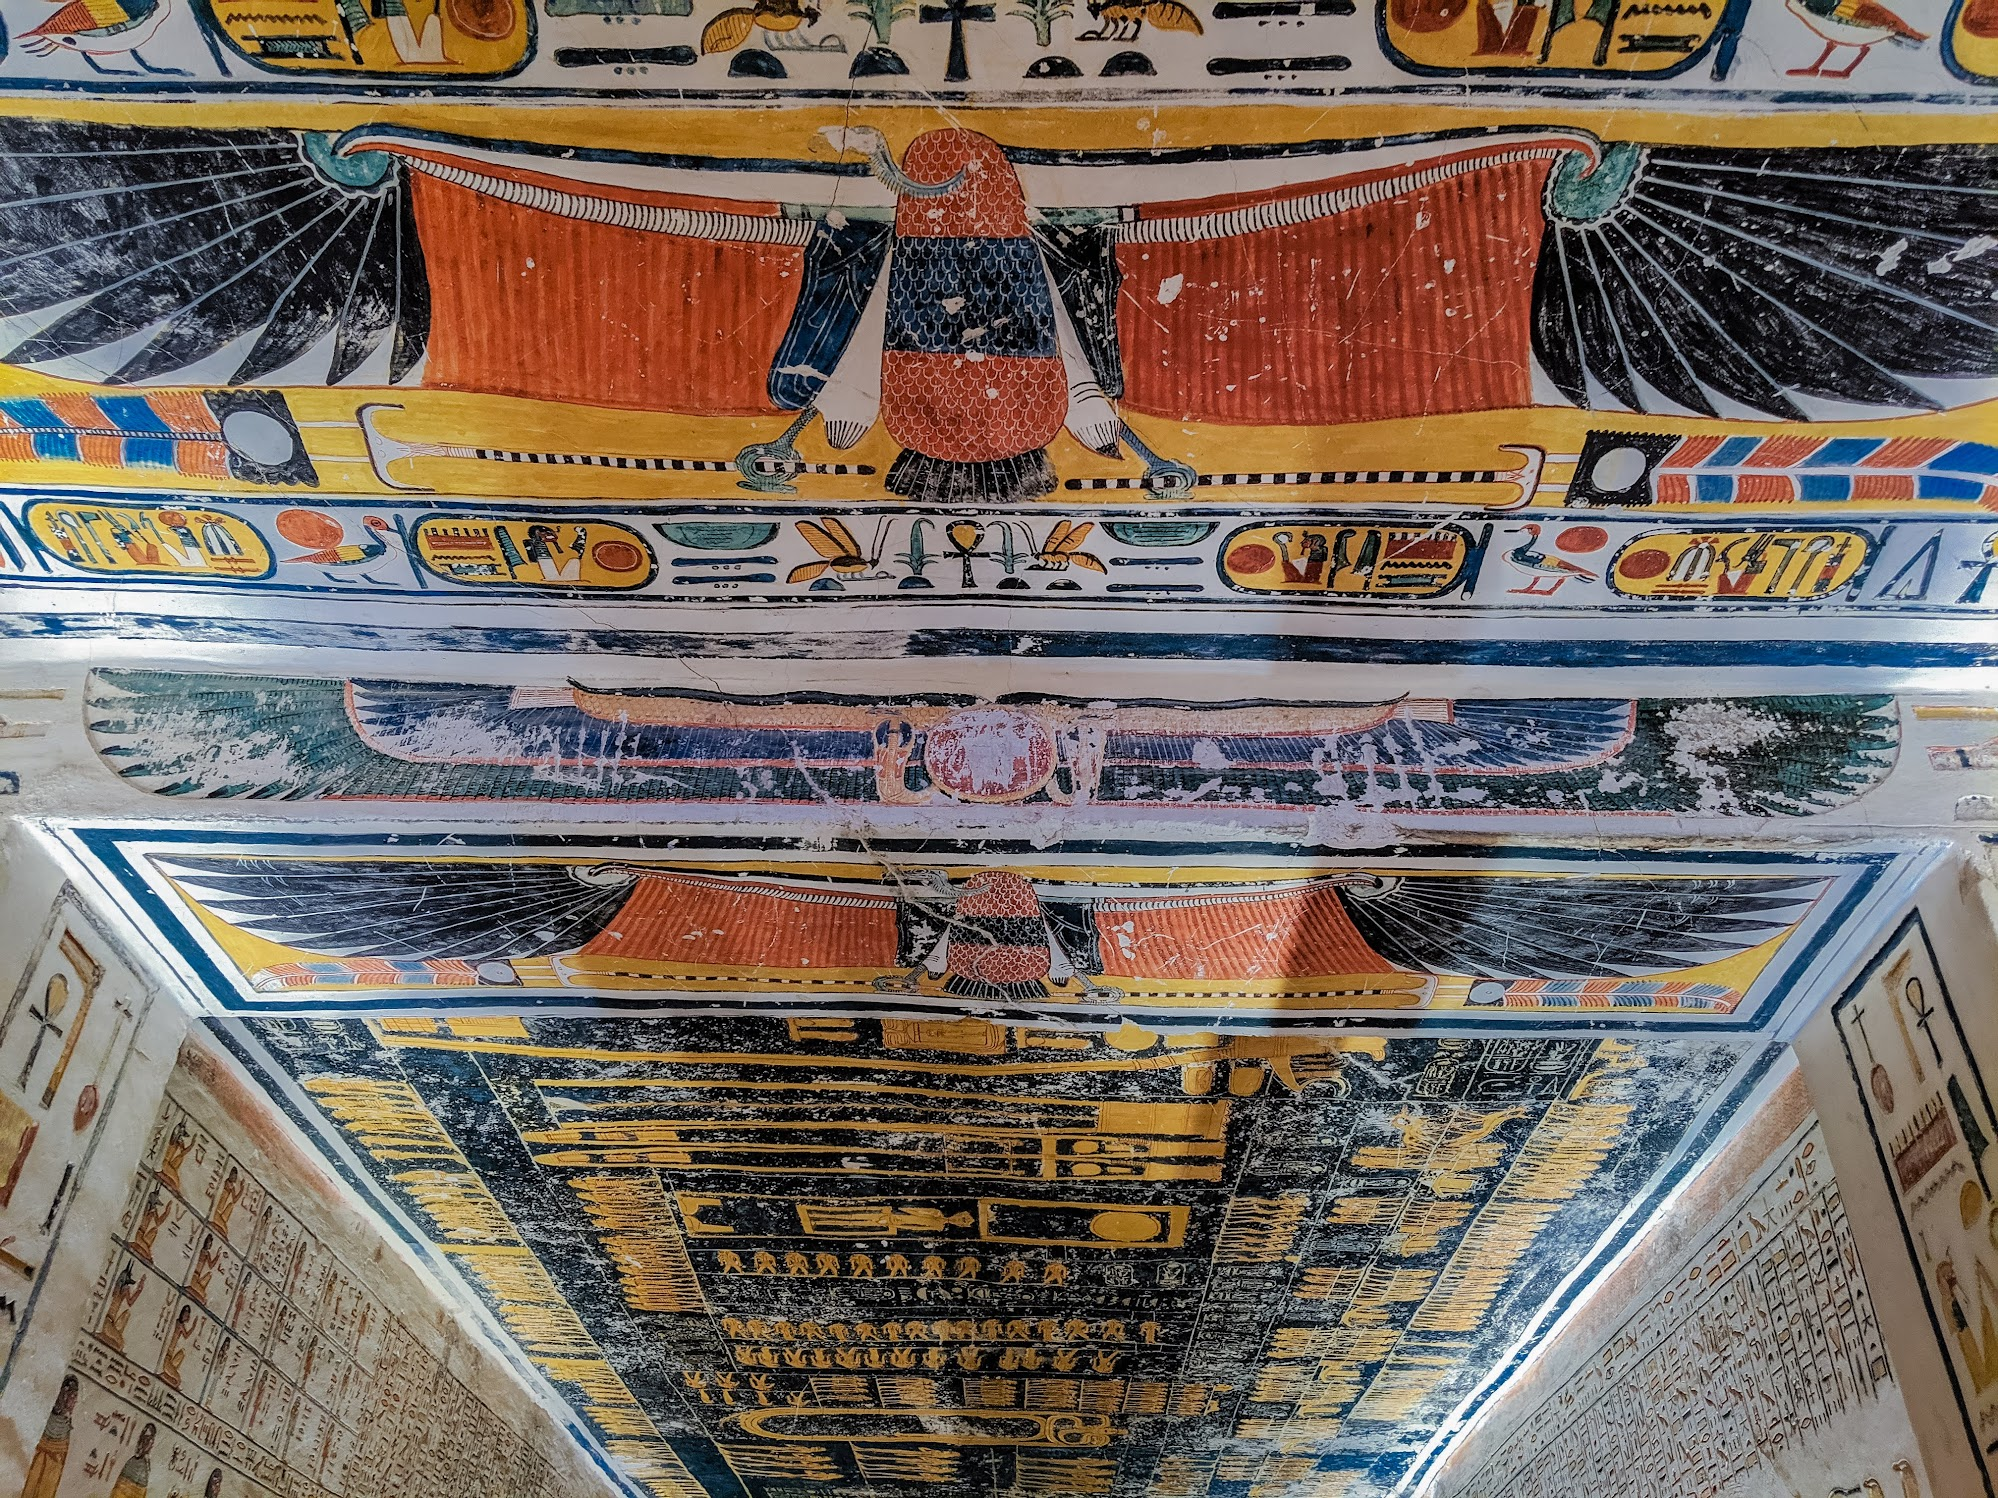 Vividly painted ceiling in one of the burial tombs in Luxor